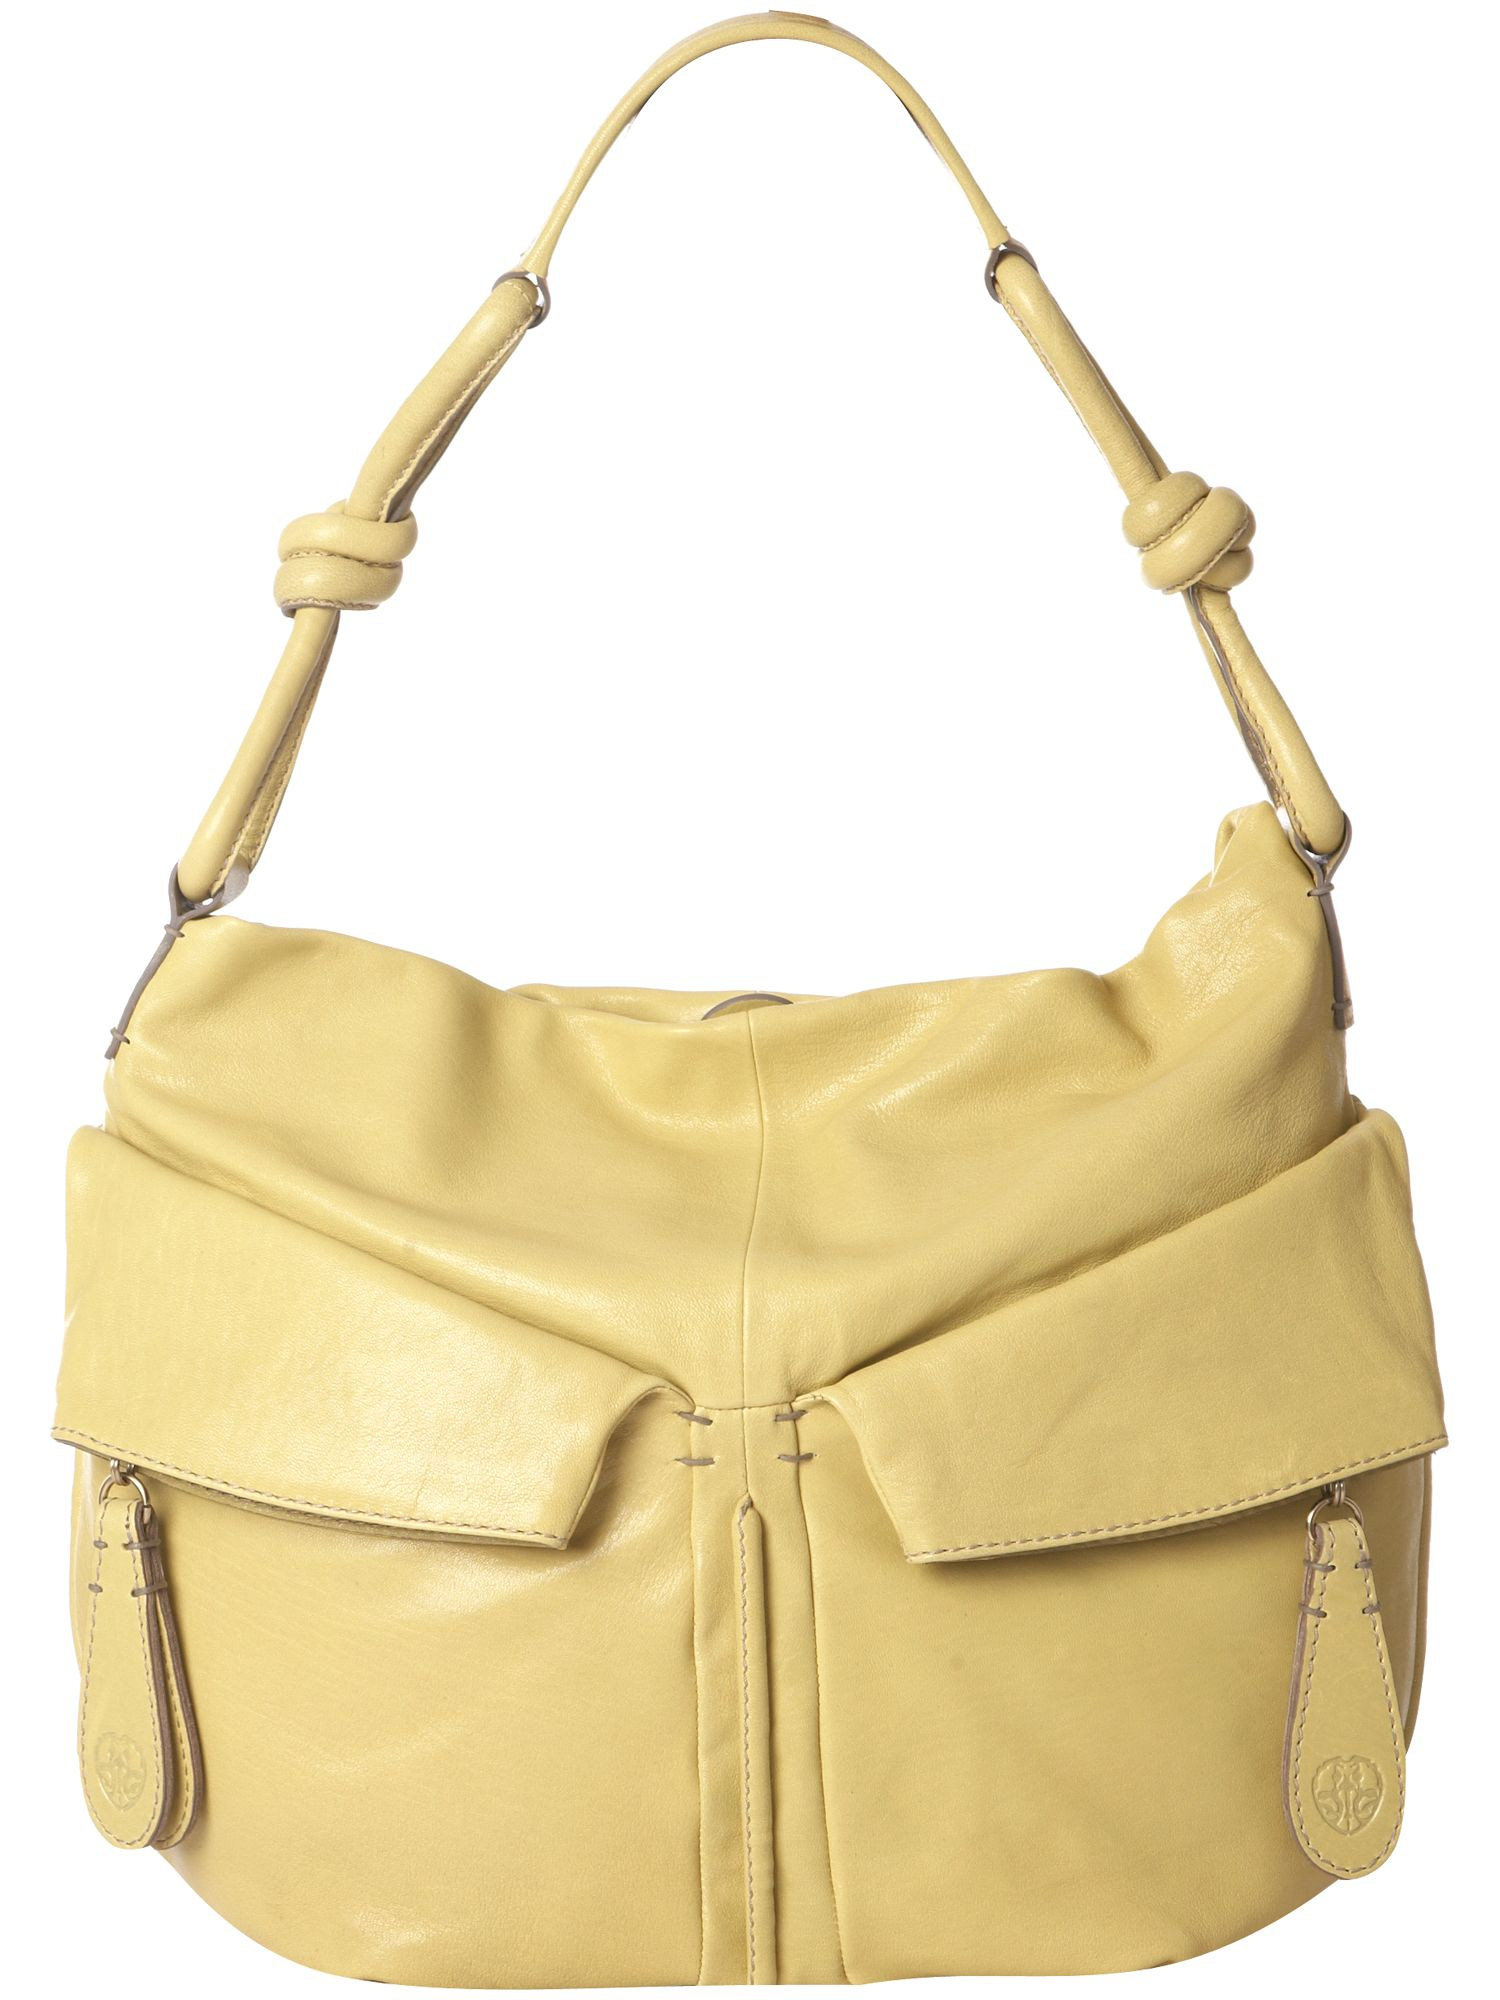 Ameko Manu Large leather hobo bag. product image